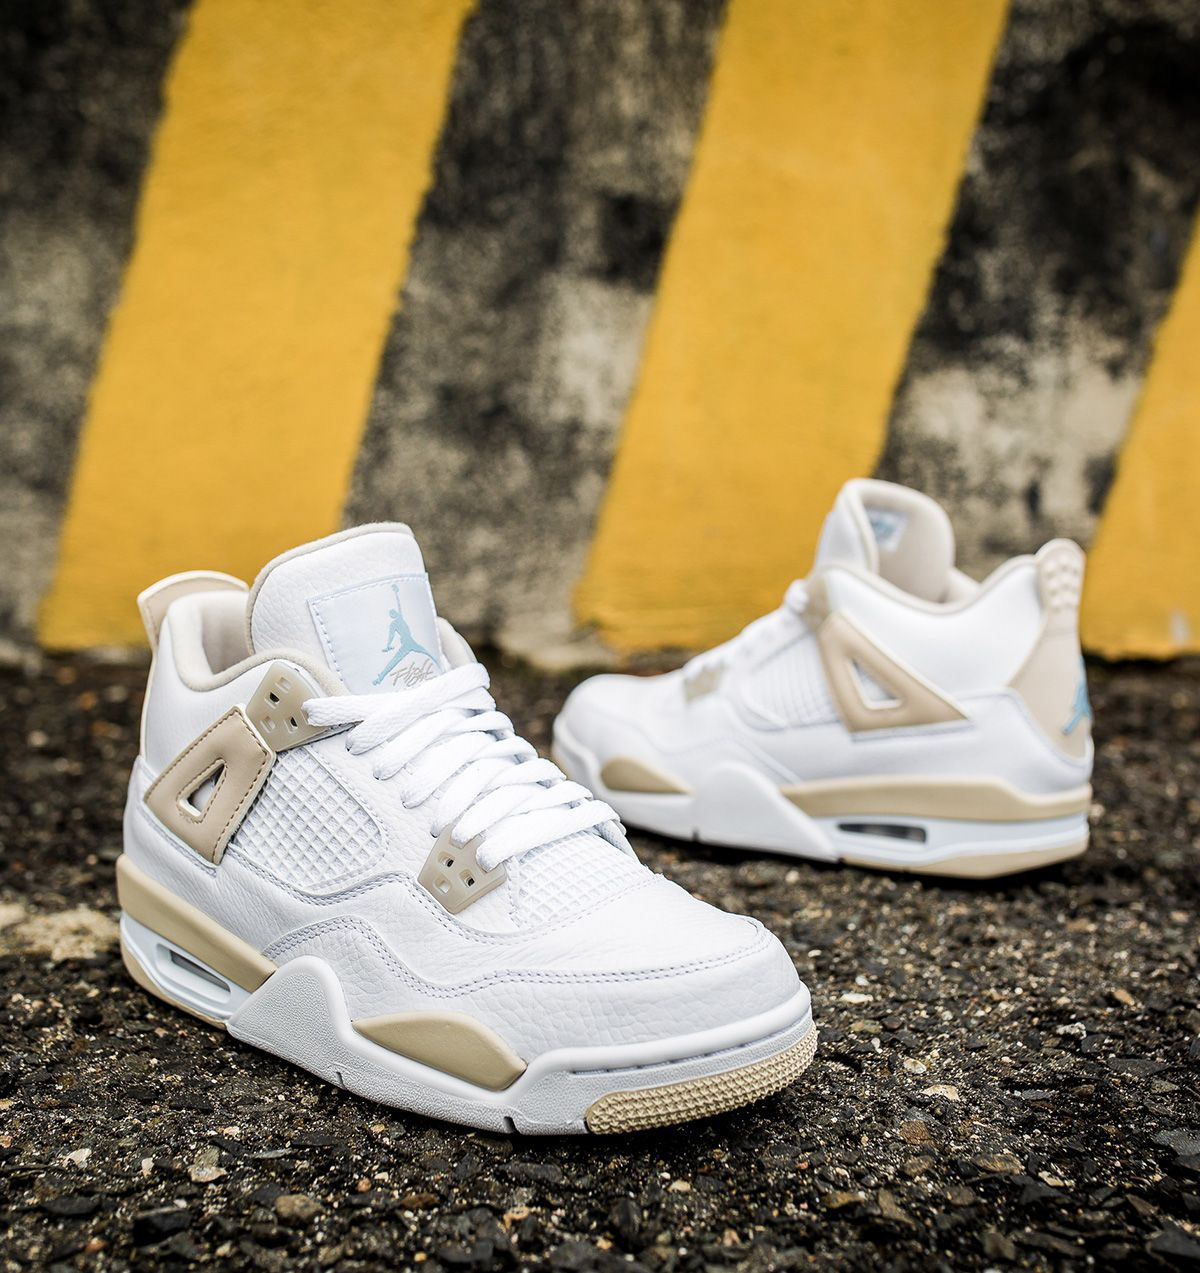 Nike Air Jordan 4 Retro GG